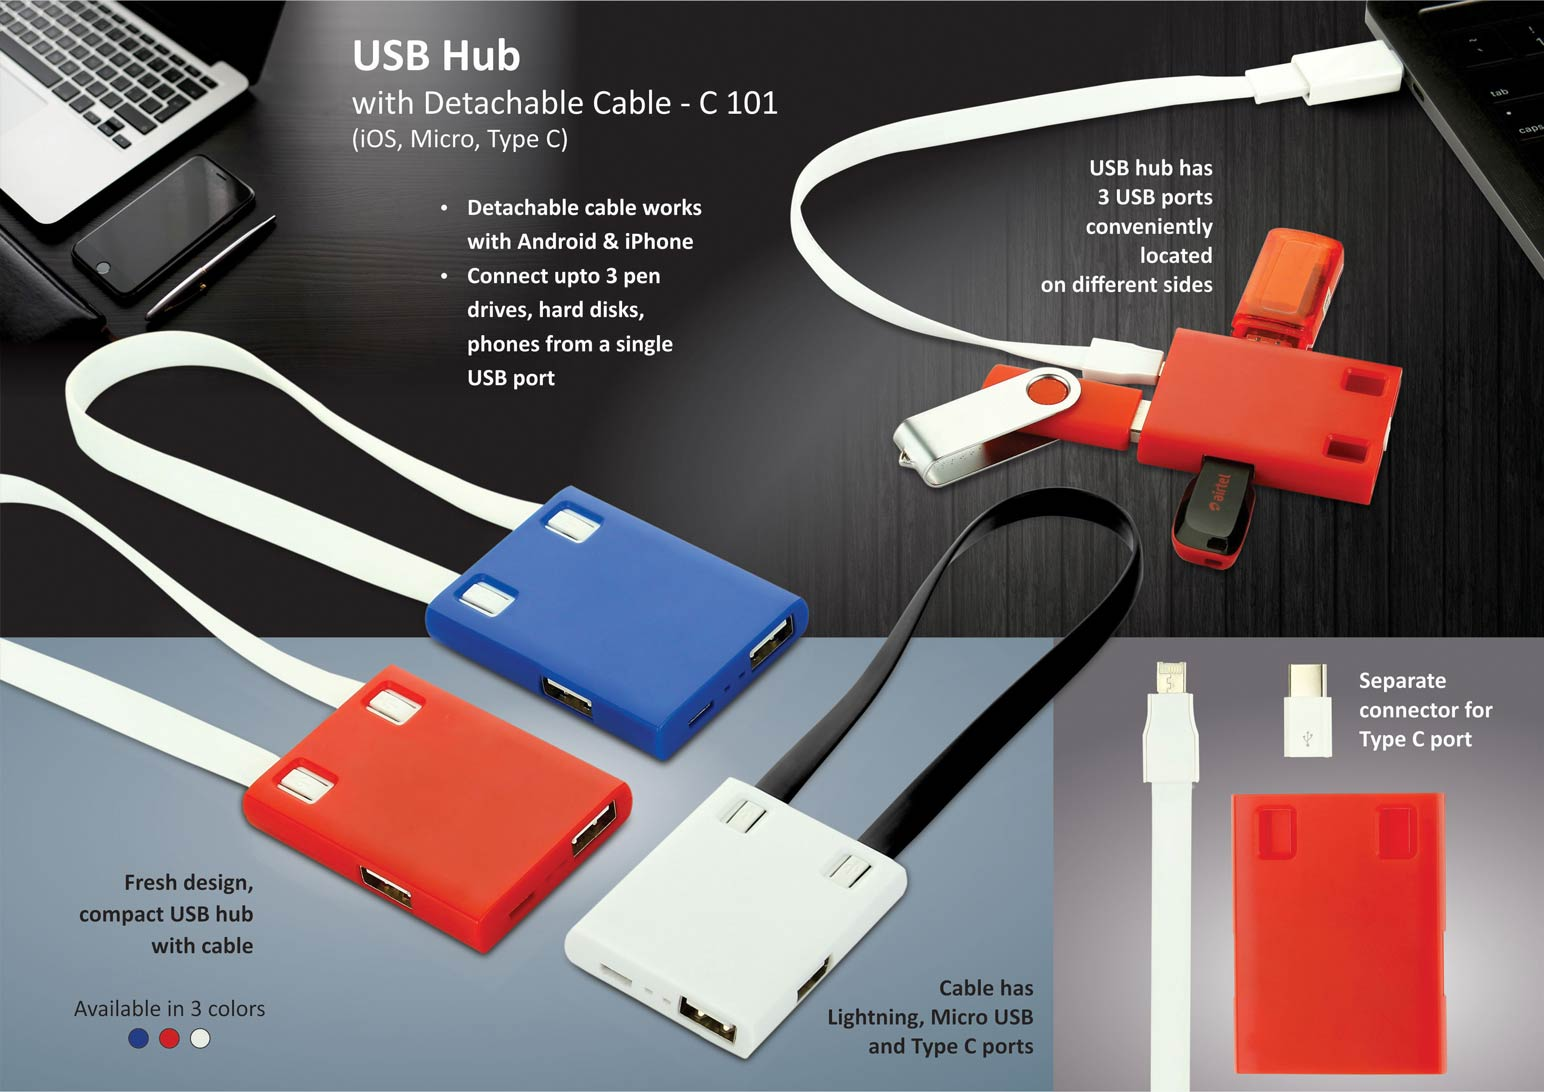 C101 - USB Hub with detachable cable (iOS, Micro, Type C) | 3 USB ports